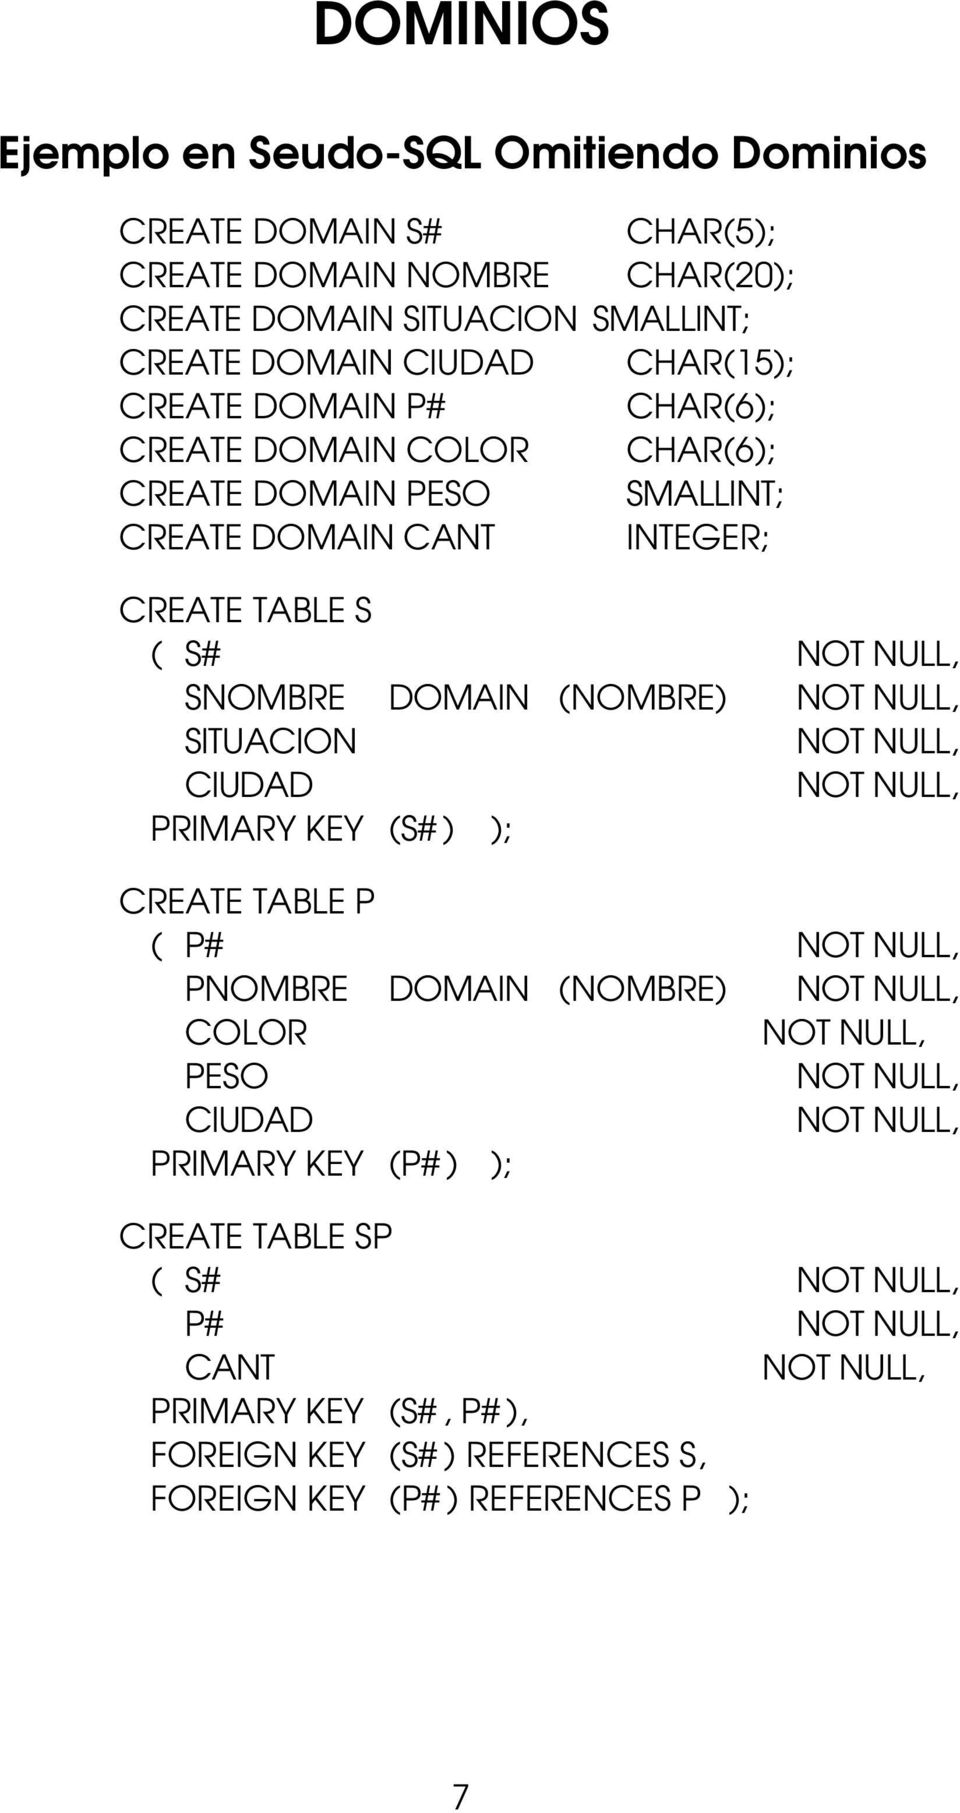 NULL, SITUACION NOT NULL, CIUDAD NOT NULL, PRIMARY KEY (S#) ); CREATE TABLE P ( P# NOT NULL, PNOMBRE DOMAIN (NOMBRE) NOT NULL, COLOR NOT NULL, PESO NOT NULL, CIUDAD NOT